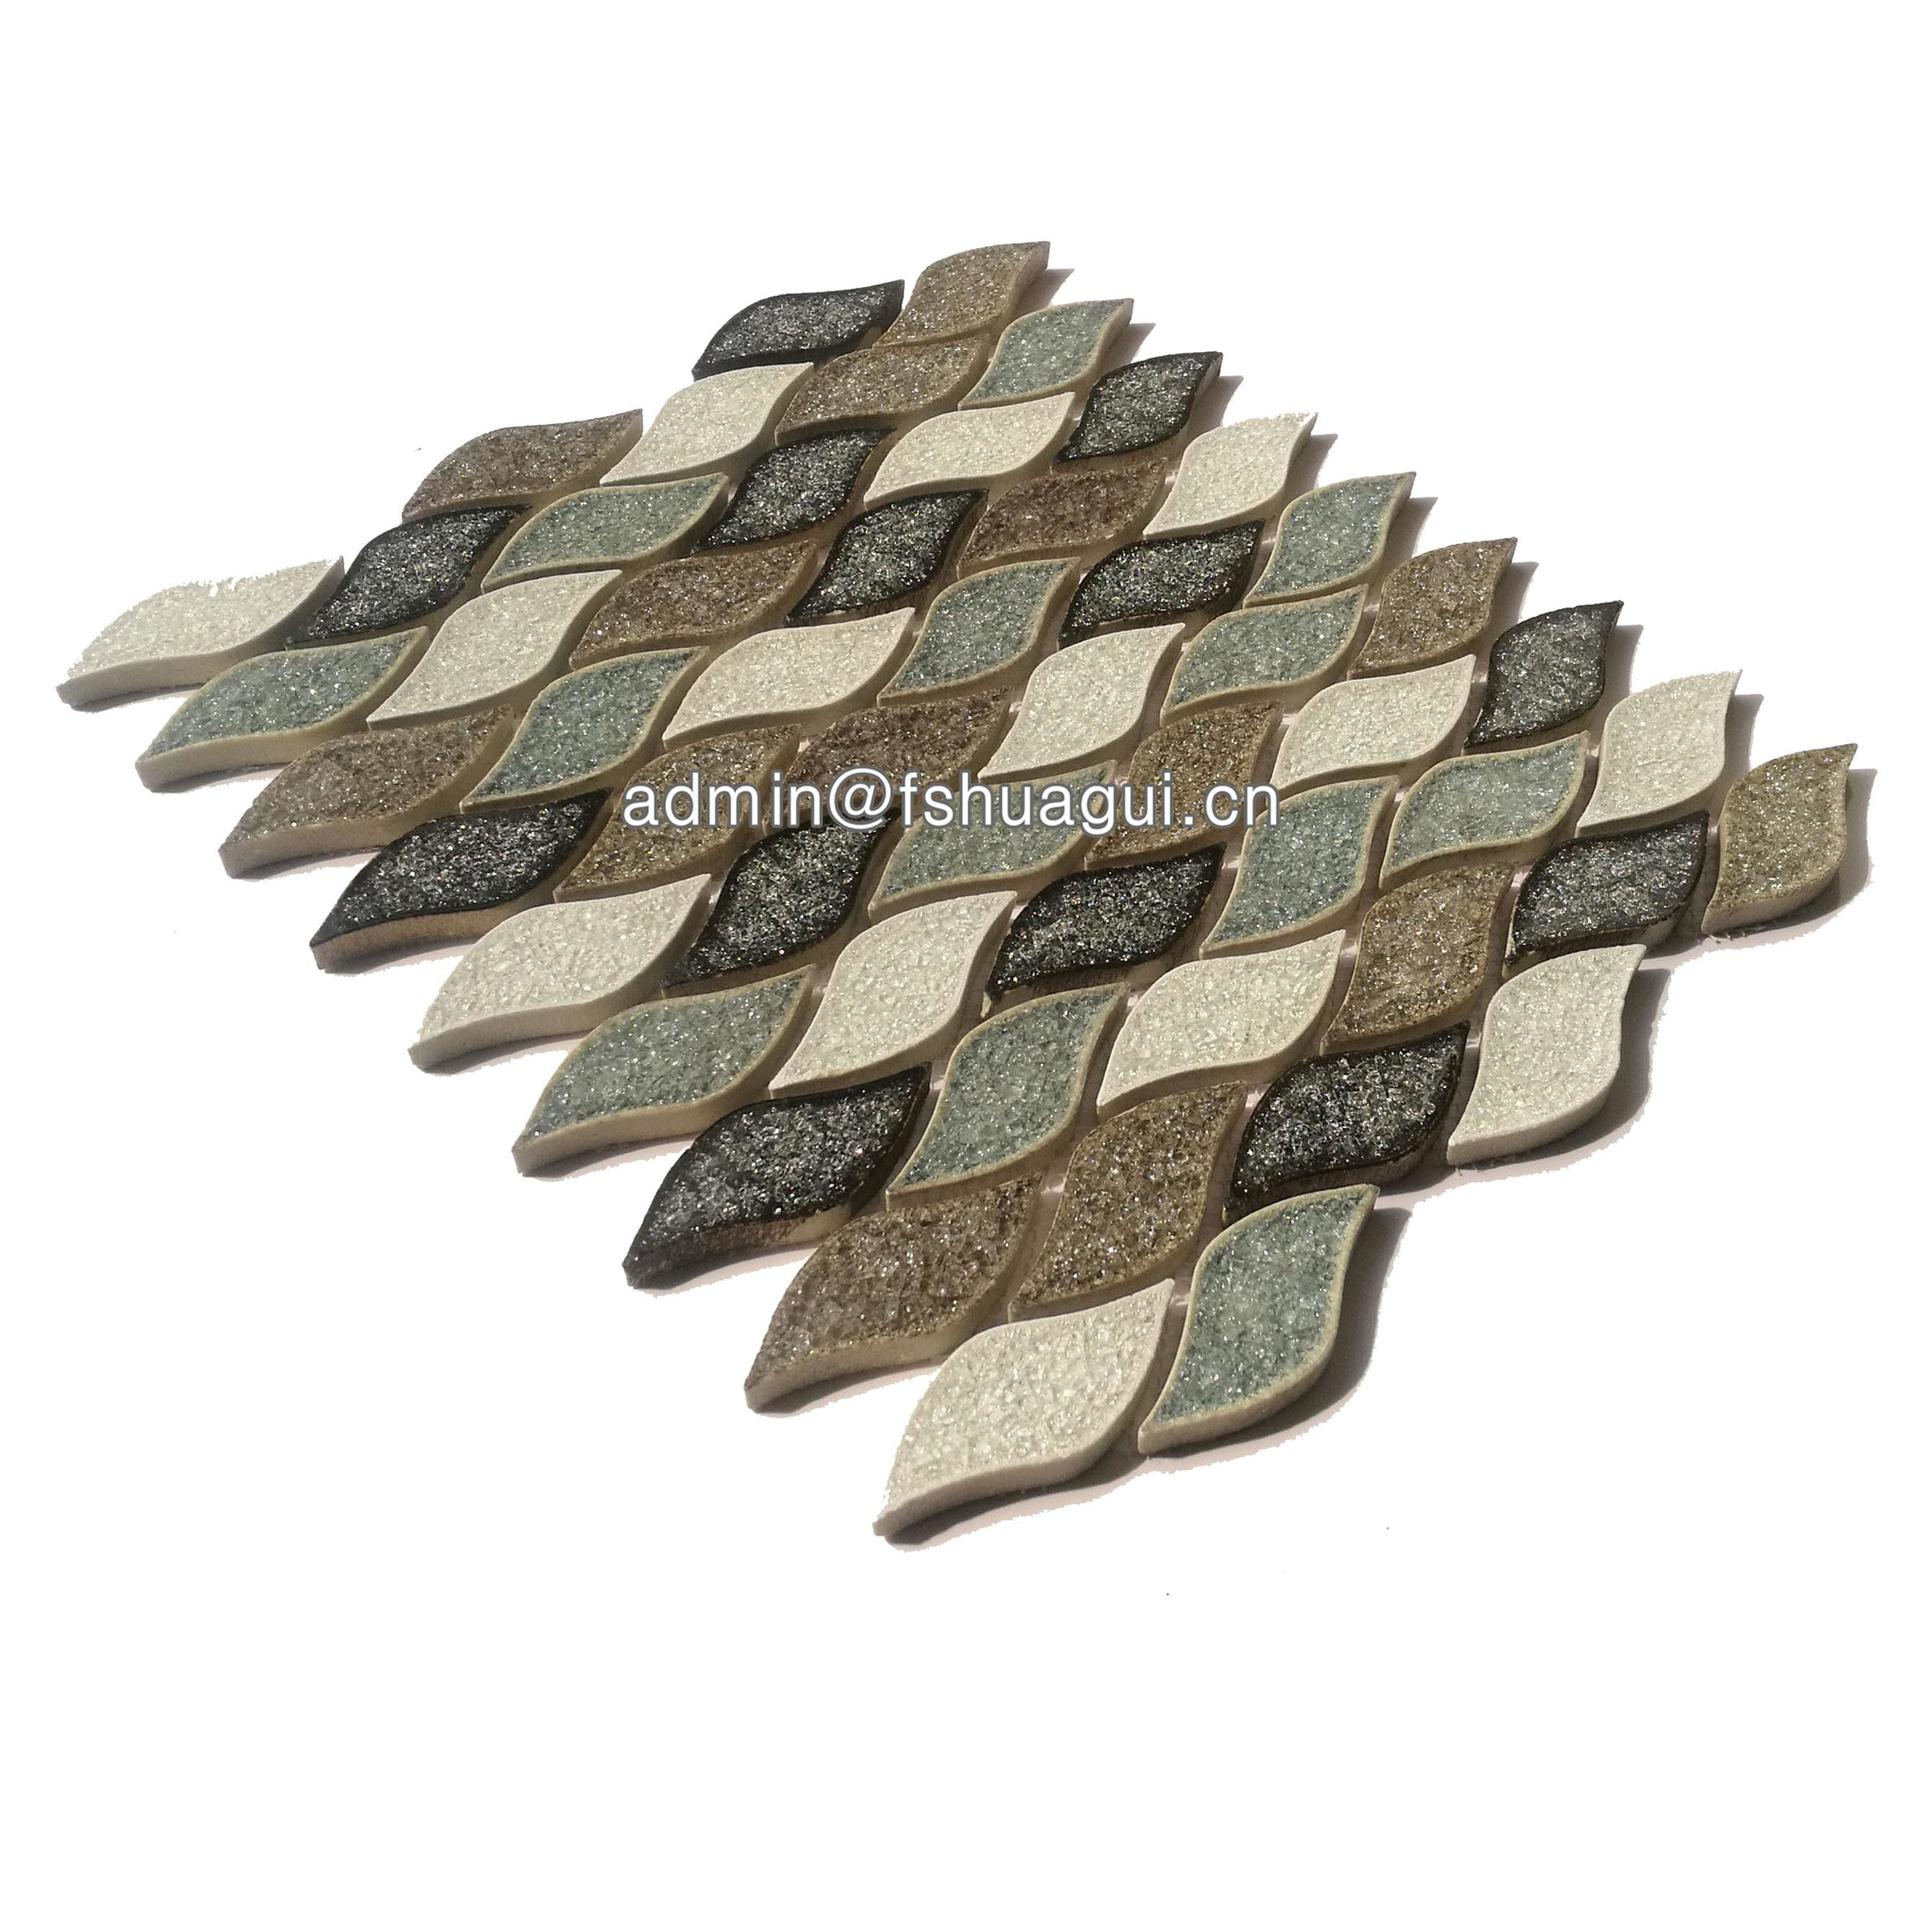 Unique leaf water jet ceramic mosaic wall tile in the UK